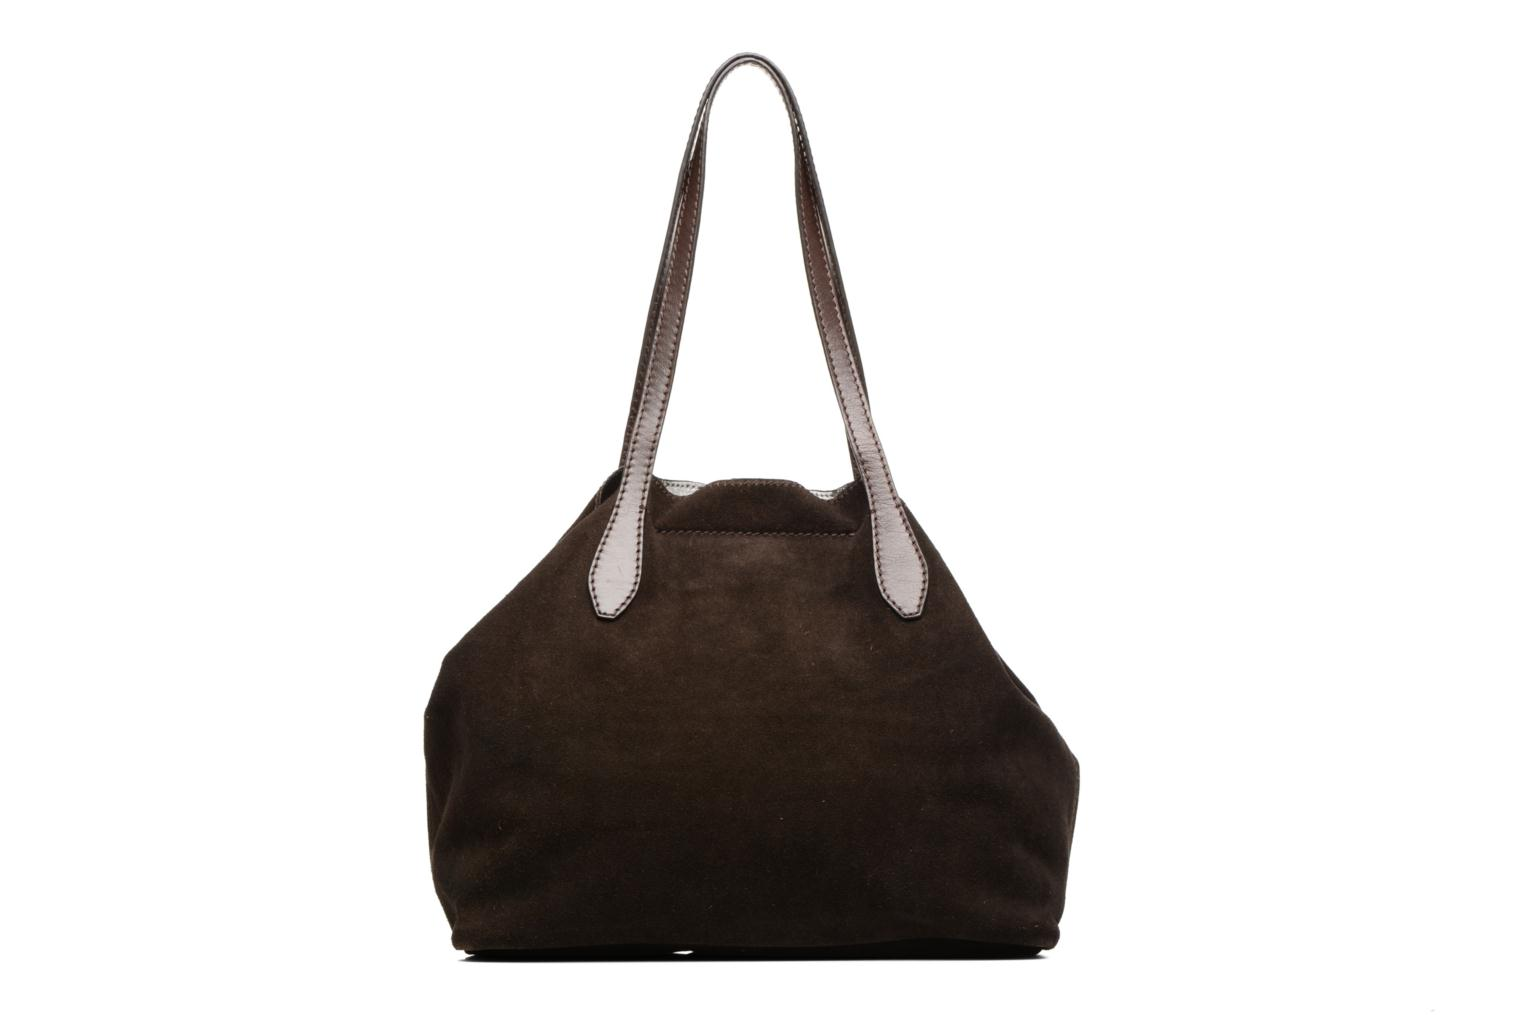 Handbags Loxwood Sac Shopper Brown front view